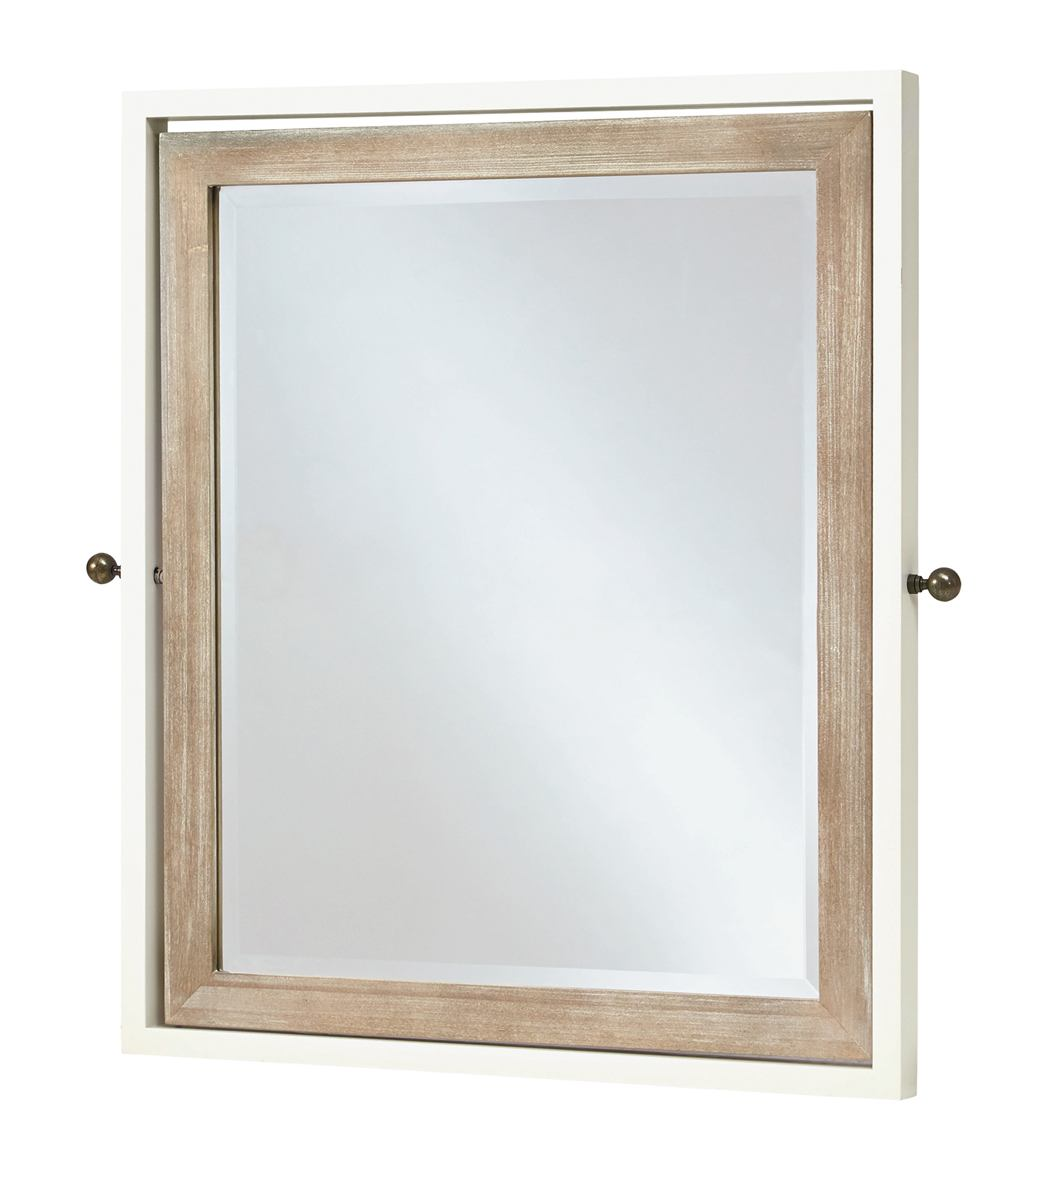 Smartstuff myRoom Tilt Mirror in Gray and Parchment 5321033 CODE:UNIV20 for 20% Off